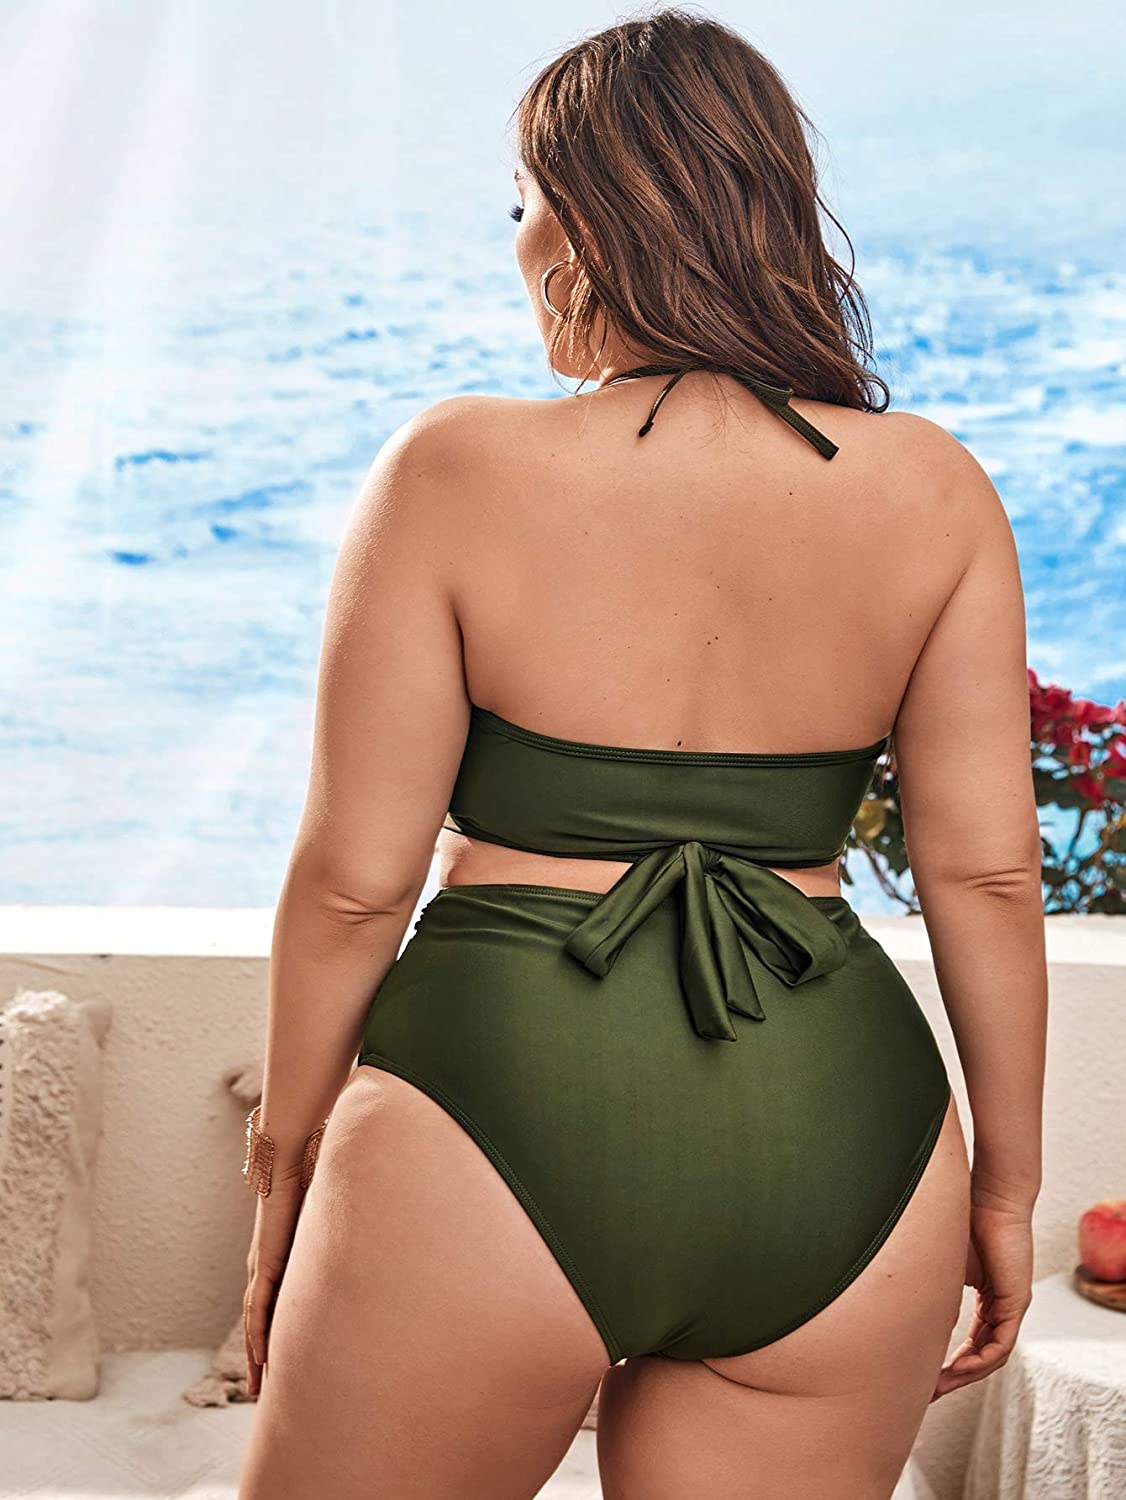 SOLY HUX Women's Plus Size Swimsuits V Neck Halter Tie Knot High Waisted Tummy Control 2 Pieces Bikini Bathing Suits